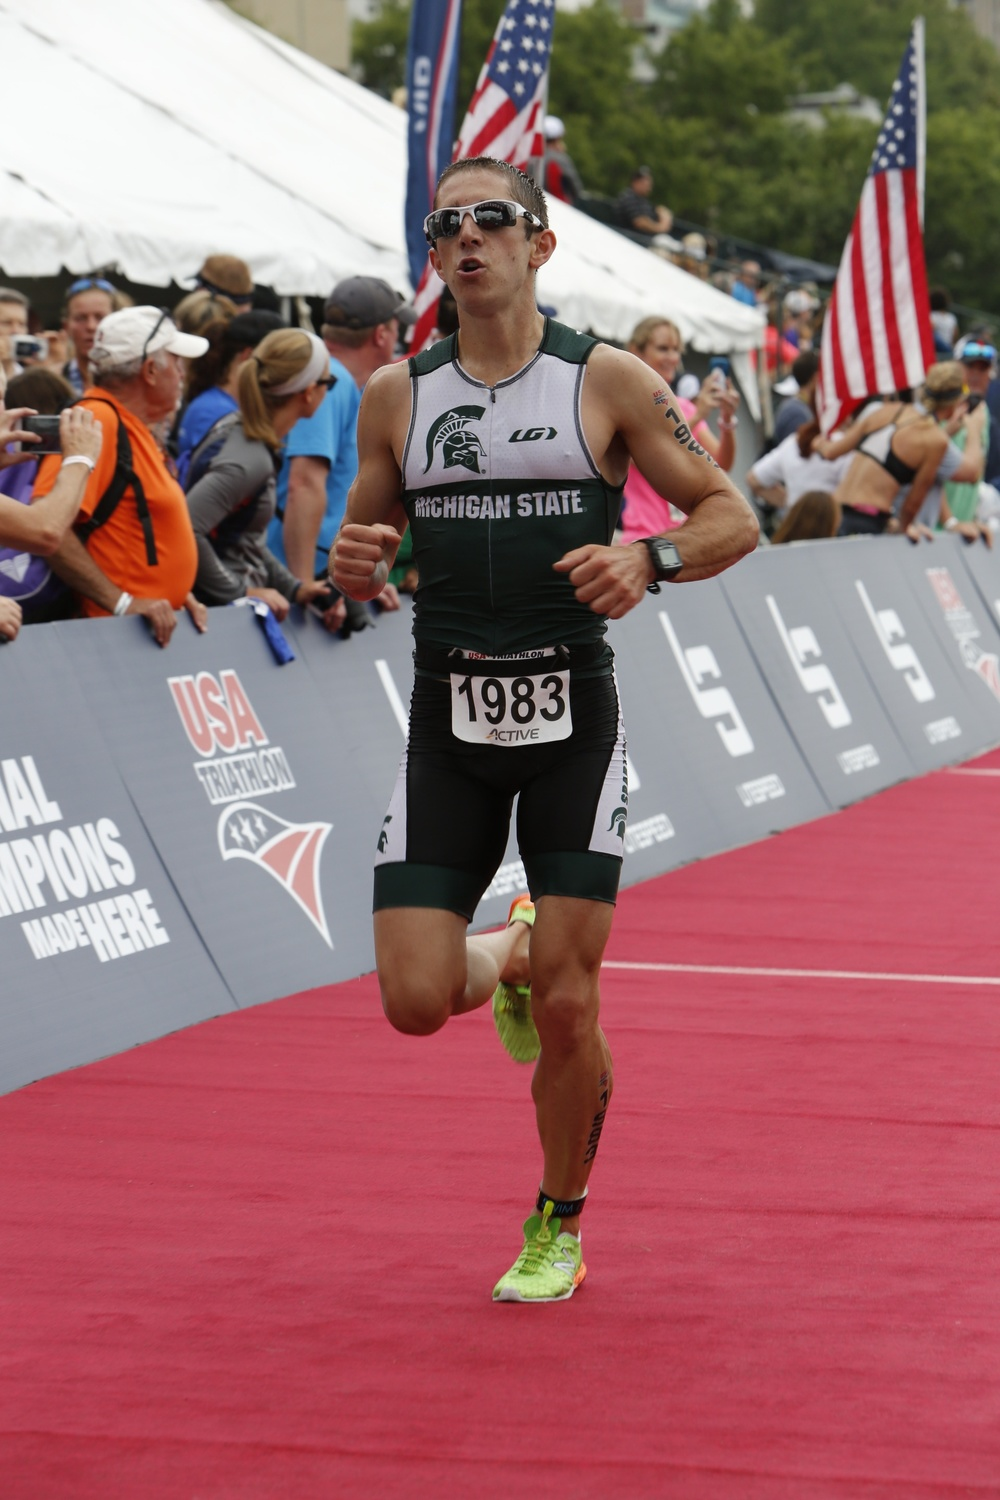 2015 USAT AGNC Todd Run Finish1.jpeg